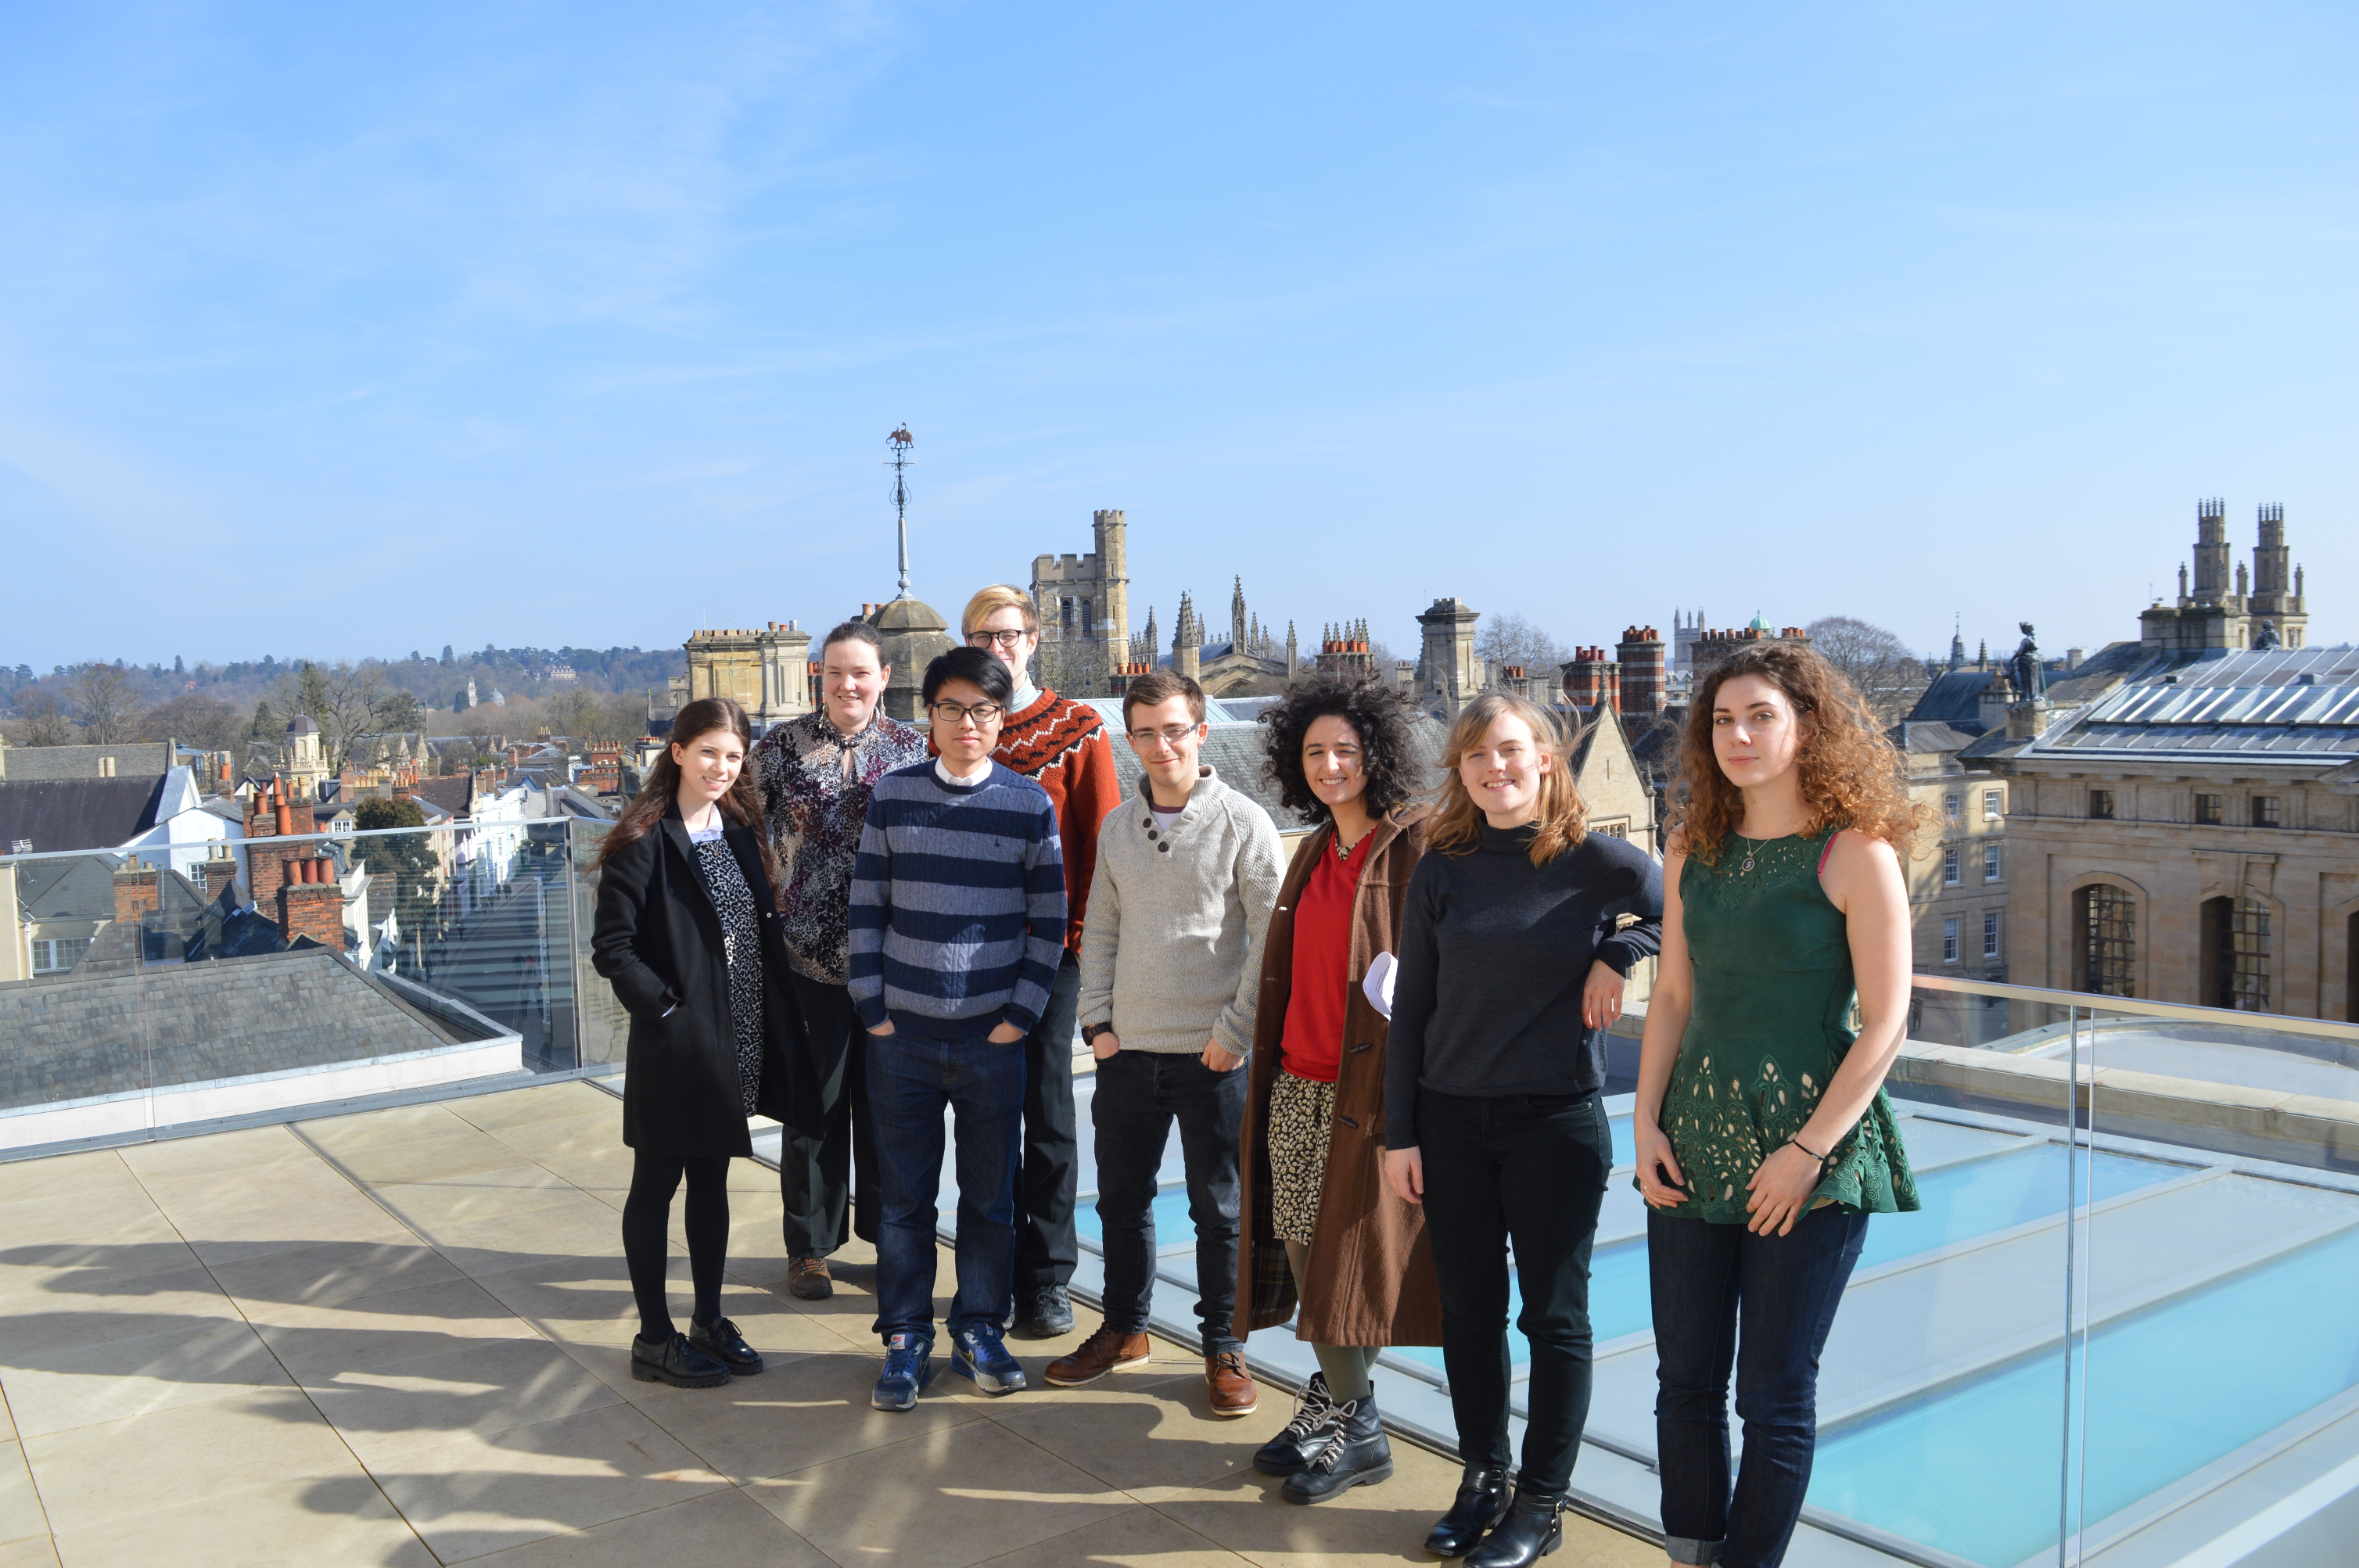 Web archiving micro-interns on the roof of the Weston Library, March 2016.